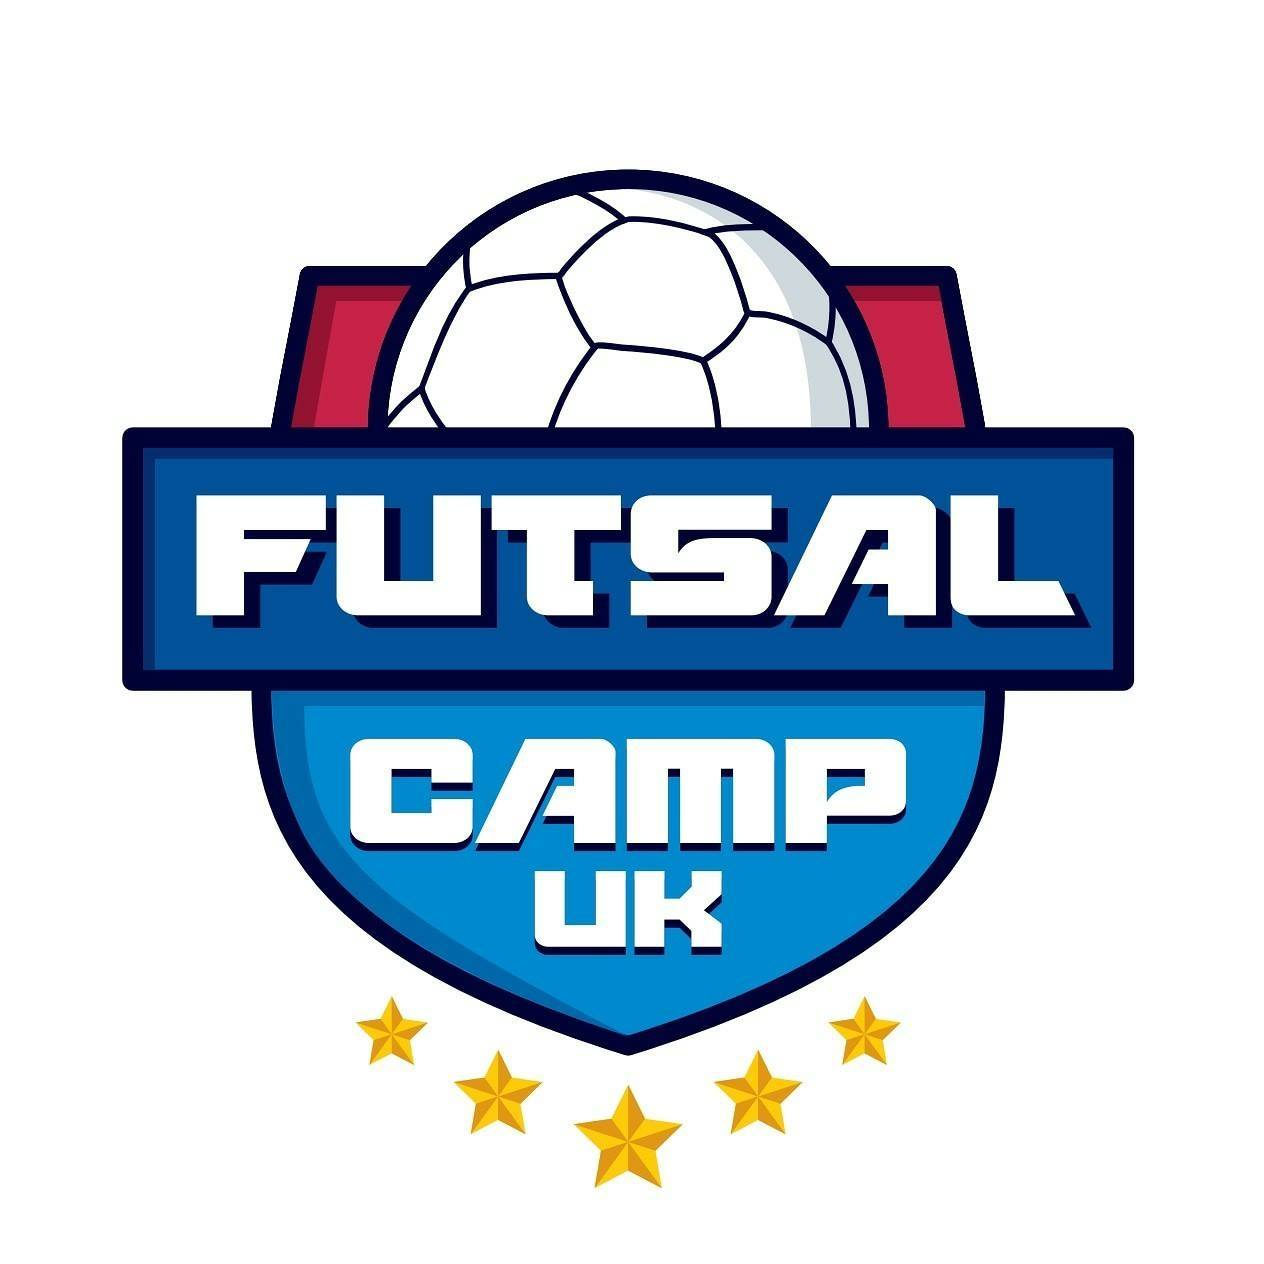 Futsal Camp UK | Learn English Summer Holiday Camp | Campus de futbol sala y ingles